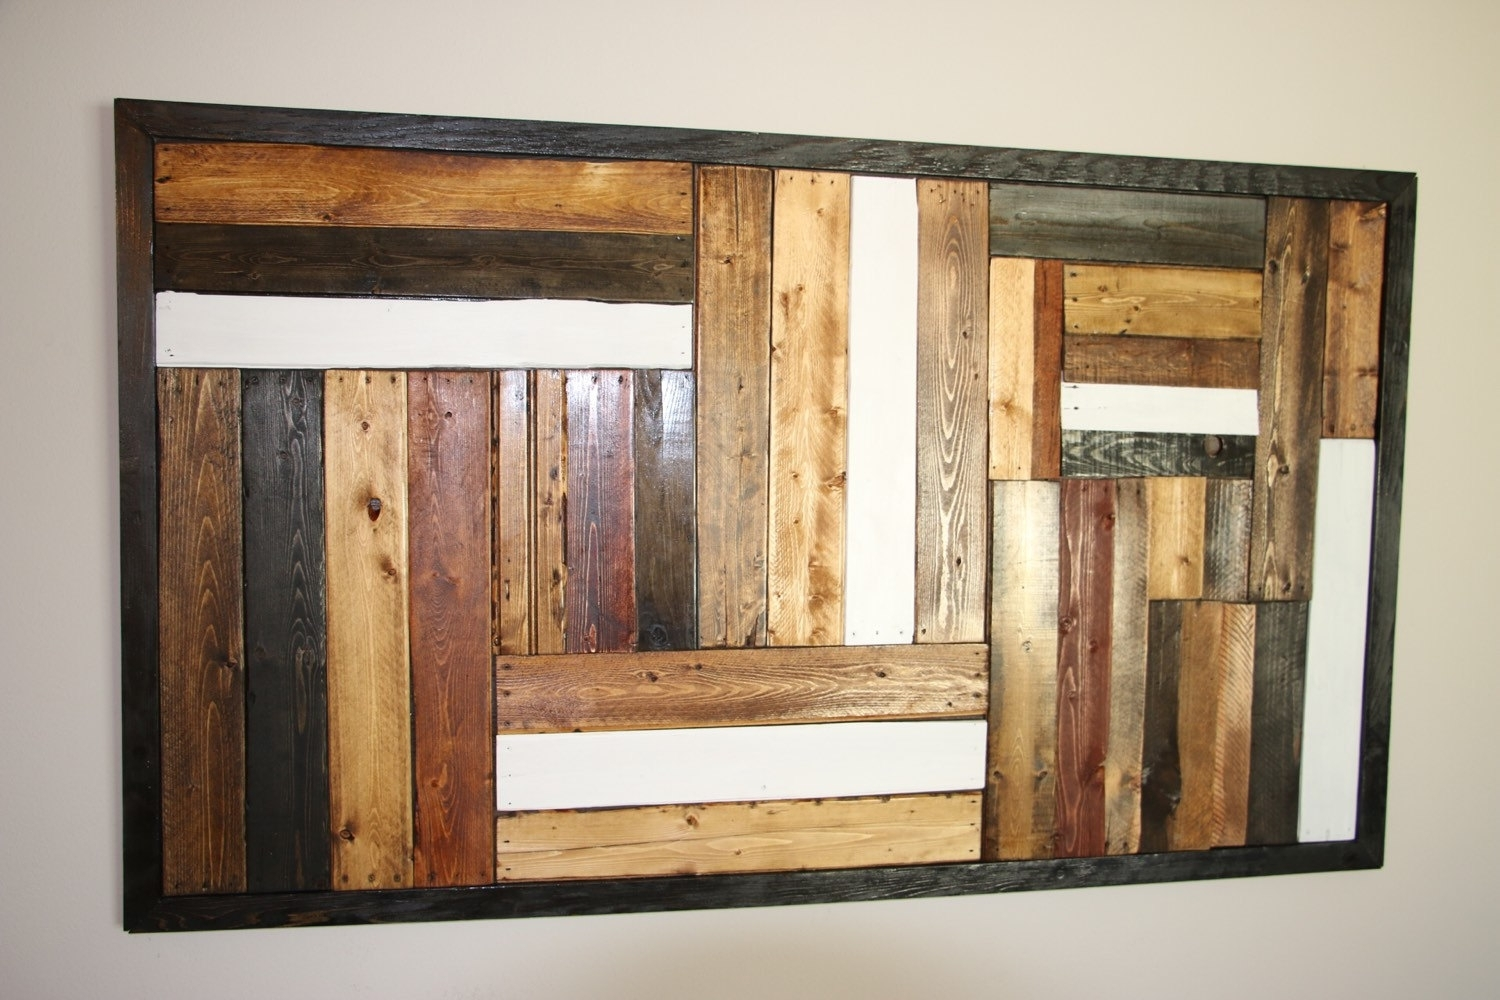 Recycled Pallet Wall Art Pallet Furniture Plans, Tables Pallet Art For Latest Pallet Wall Art (Gallery 2 of 15)